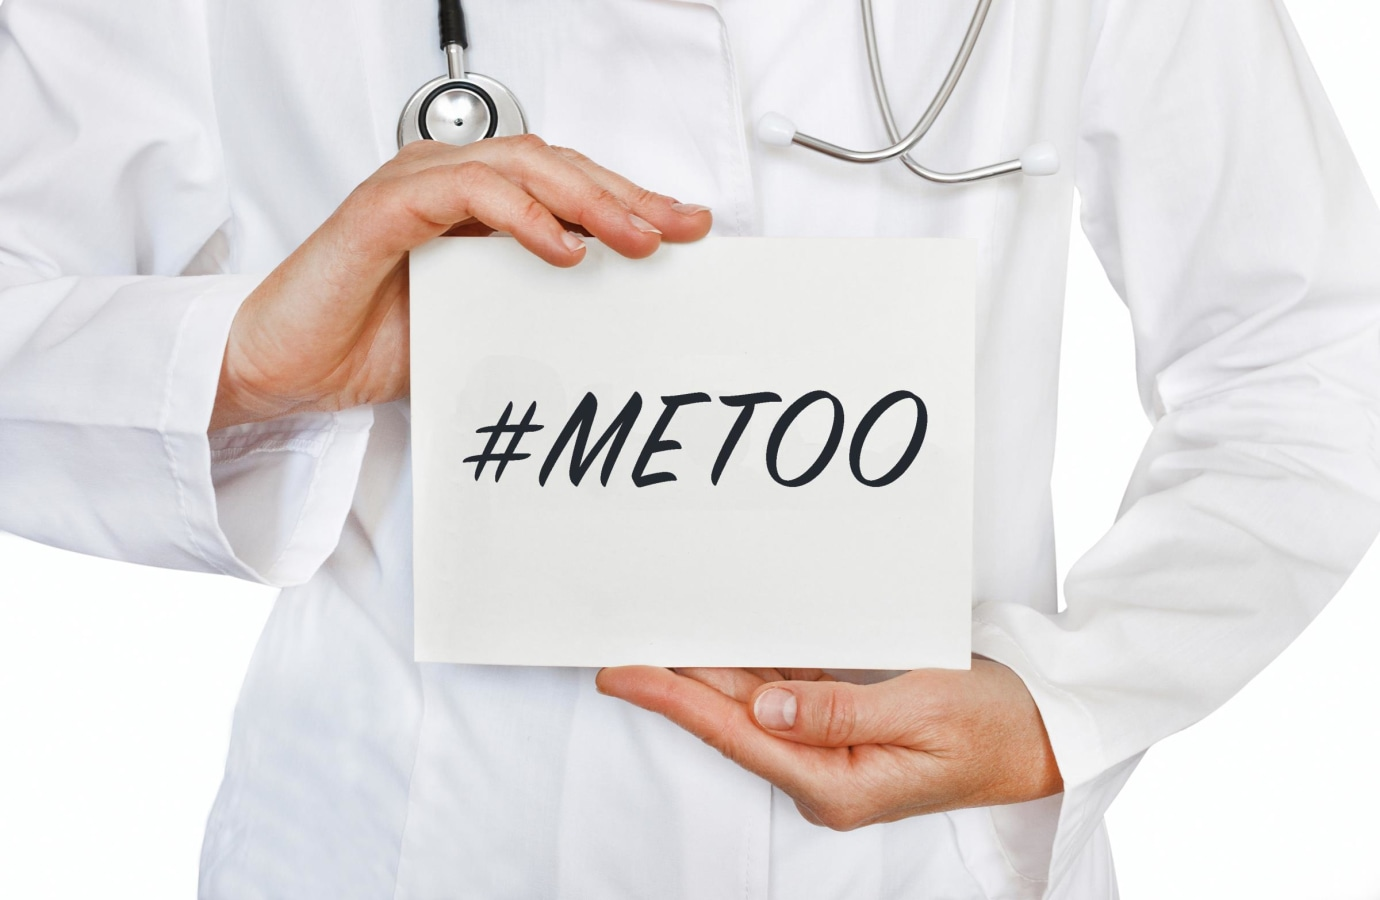 Alumni of and medical professionals at Yale have been an active part of the campaign to end sexual misbehavior in the workplace.